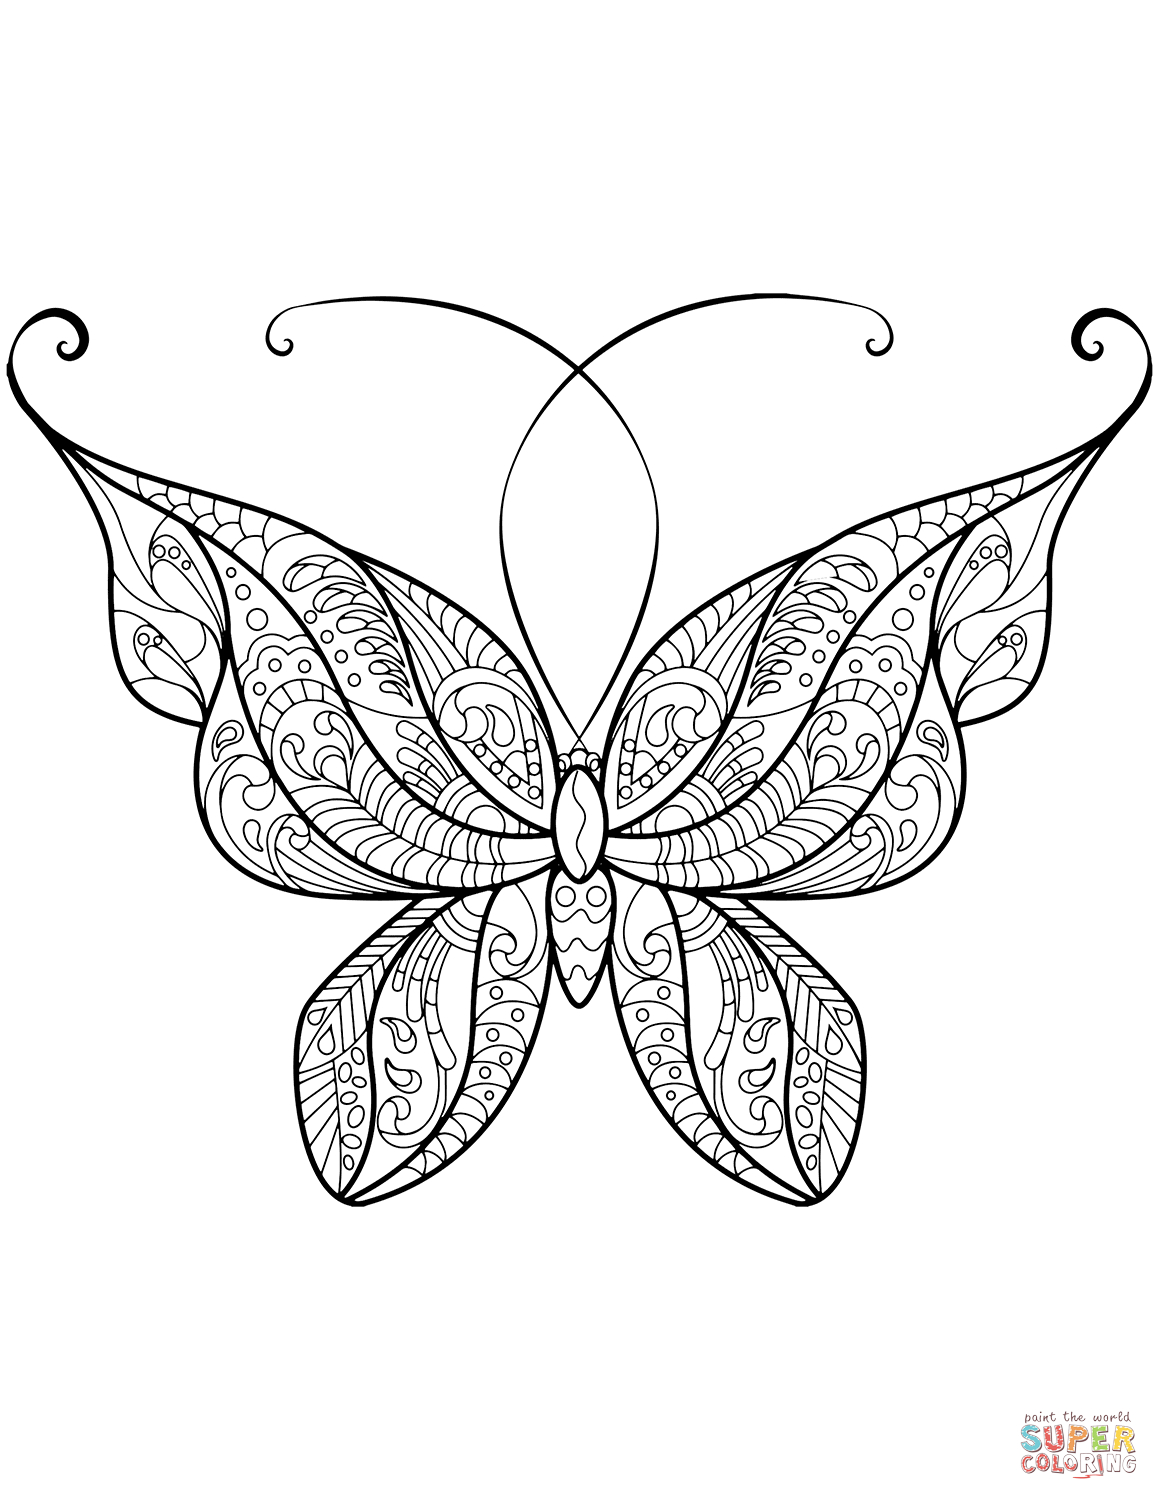 Zentangle Butterfly Coloring Page   Free Printable Coloring Pages - Free Printable Butterfly Coloring Pages